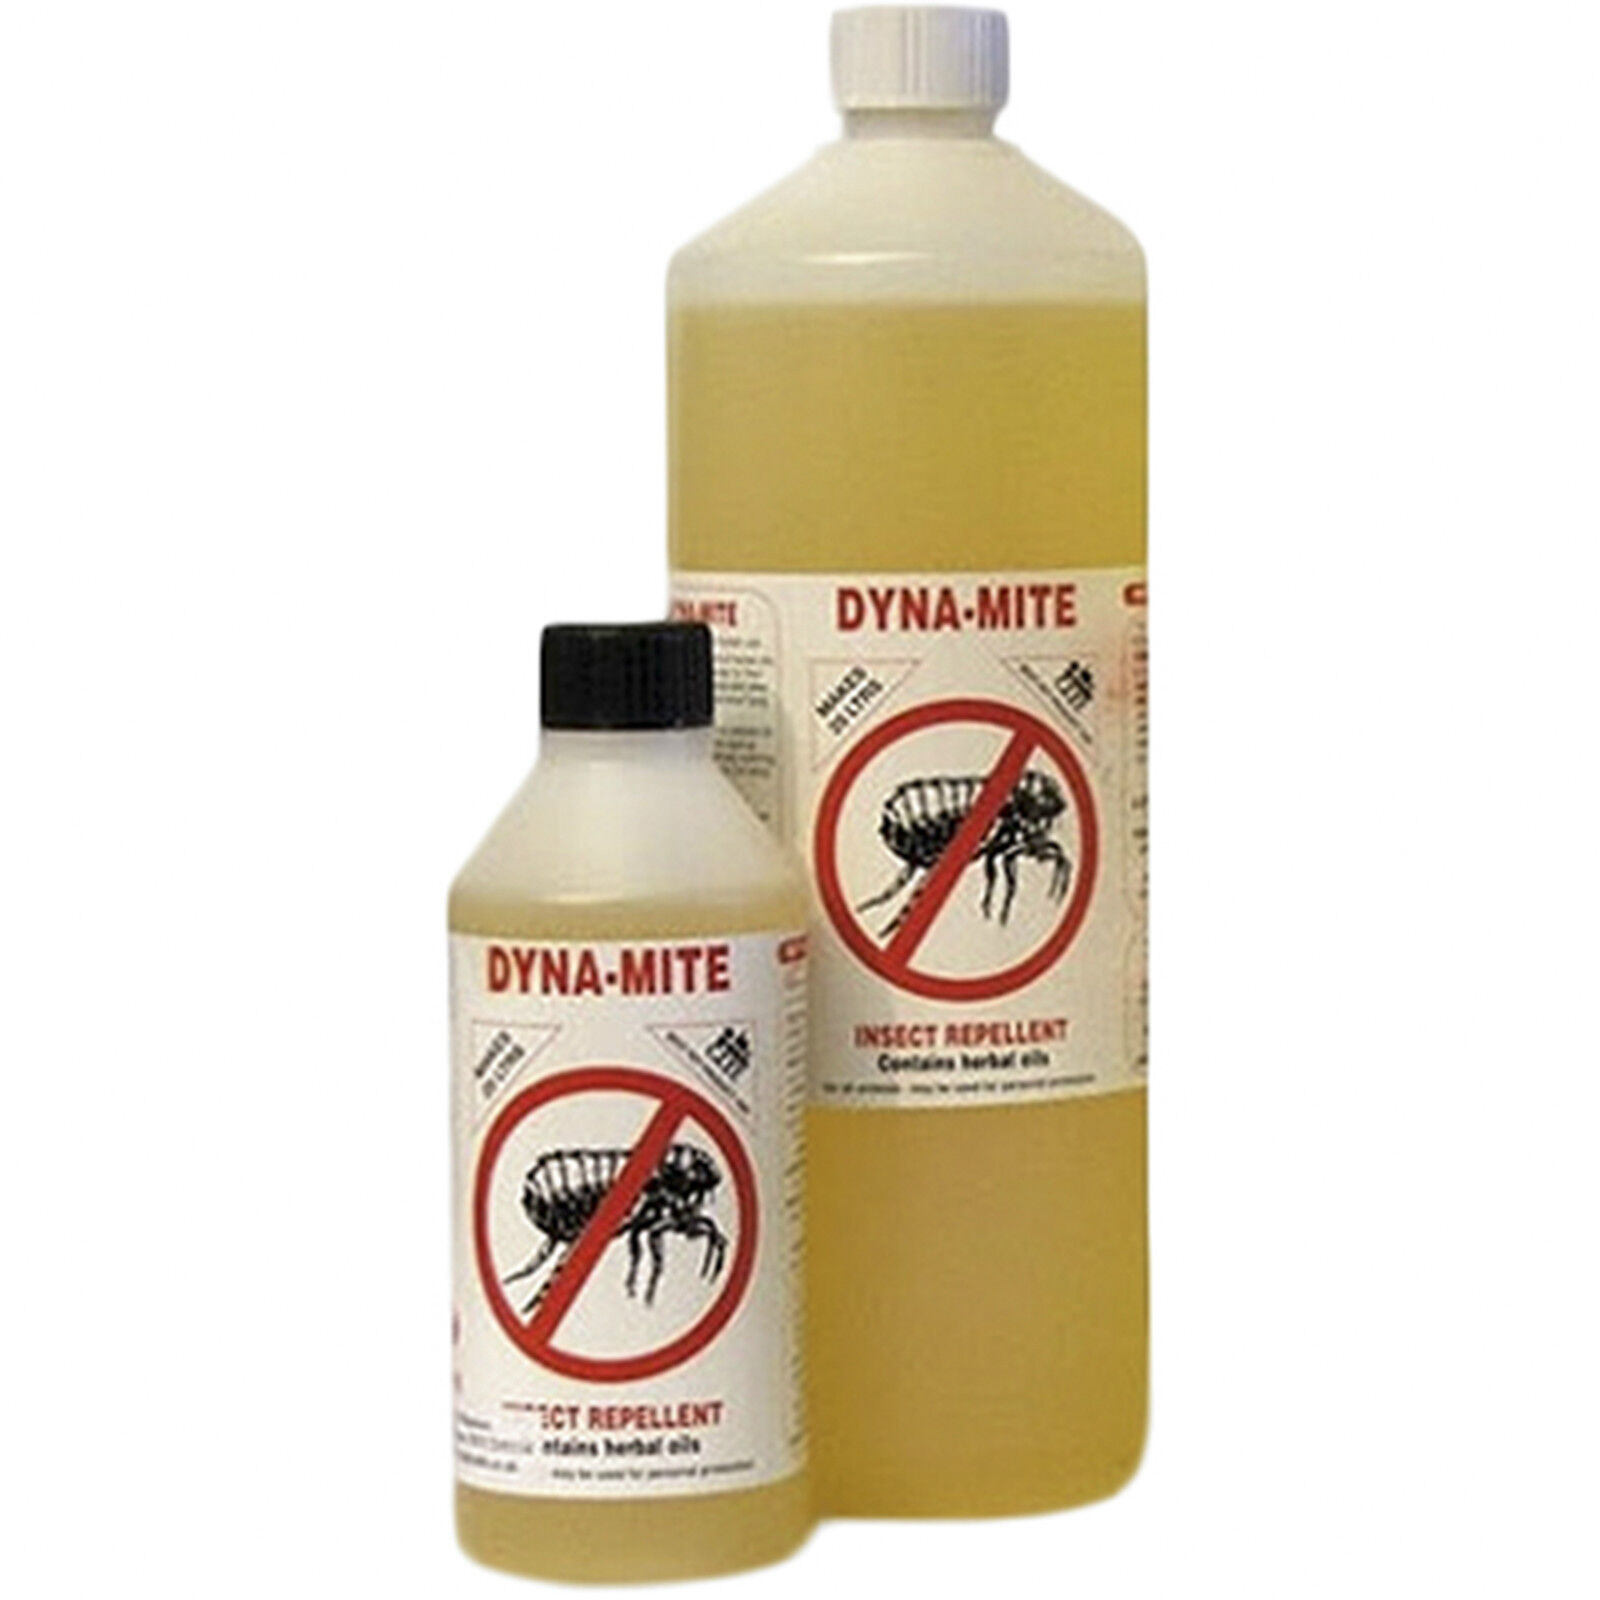 Dynamite insect  fly flea repellent dogs horses large 1 litre by Doghealth